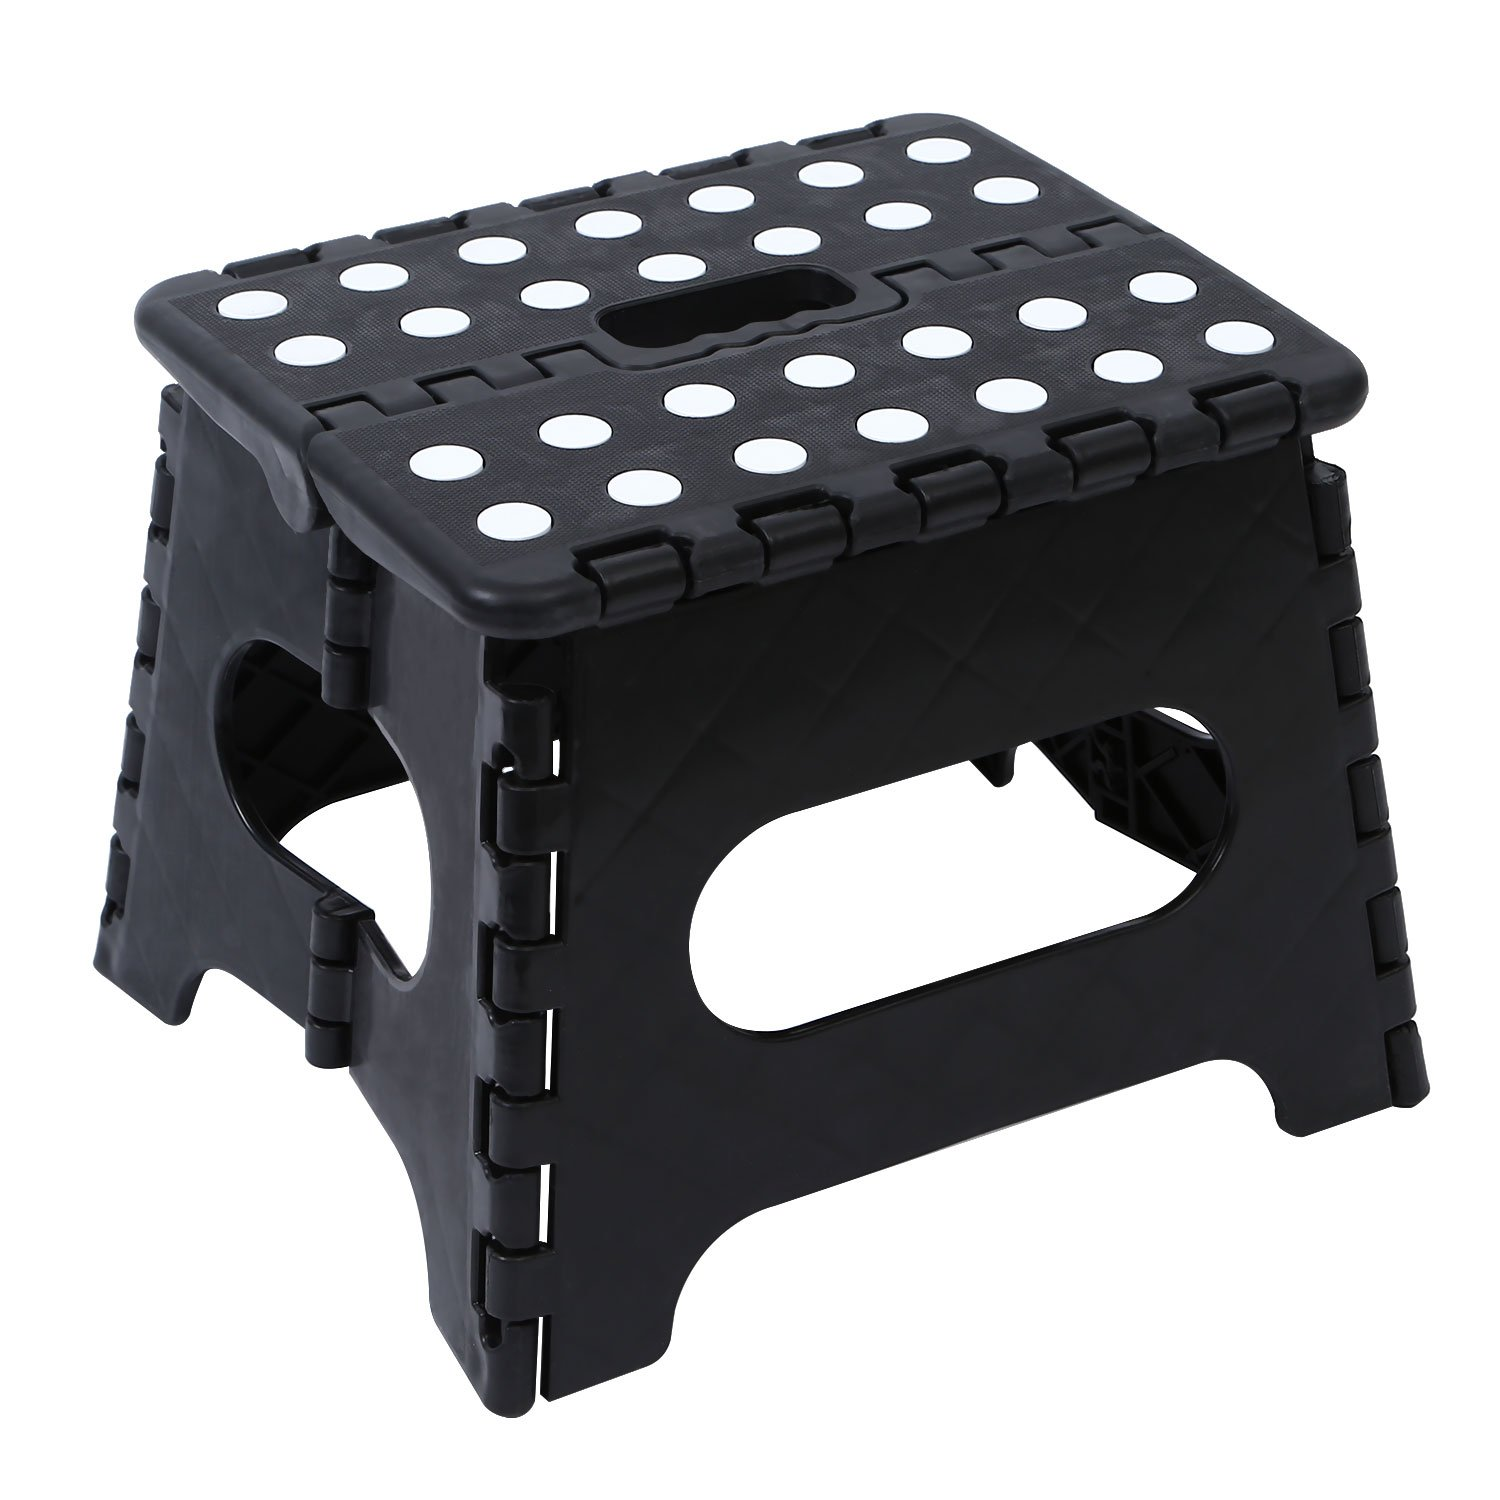 Maddott Folding Step Stool 11 Inch Height Fold Step Stool for Kids Adults Kitchen Bathroom and Bedroom with Handles 8x6x7.5inch Each Holds up to 180 Lb Step Stool Folding Black Pack of 2